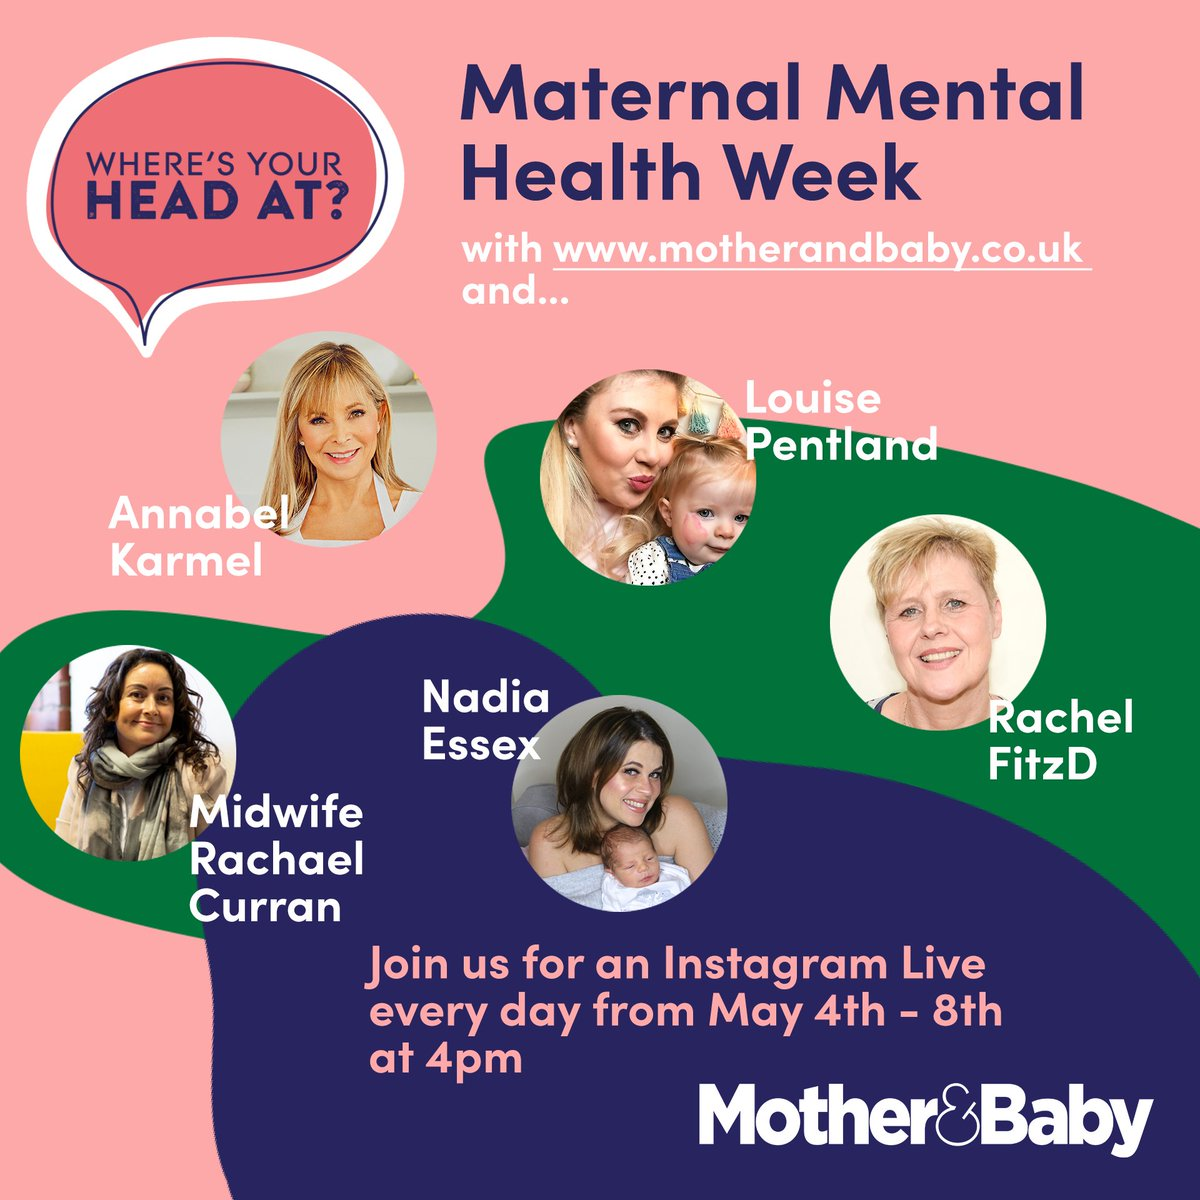 It's #maternalmentalhealth week and we're bringing you Instagram Live chats every day at 4pm over on our Instagram account with  @LouisePentland @LadyNadiaEssex @annabelkarmel @RDesorgher @wheresyourhead_  #WYHA https://t.co/CGCr8csaJu https://t.co/jZFUaQFkpD